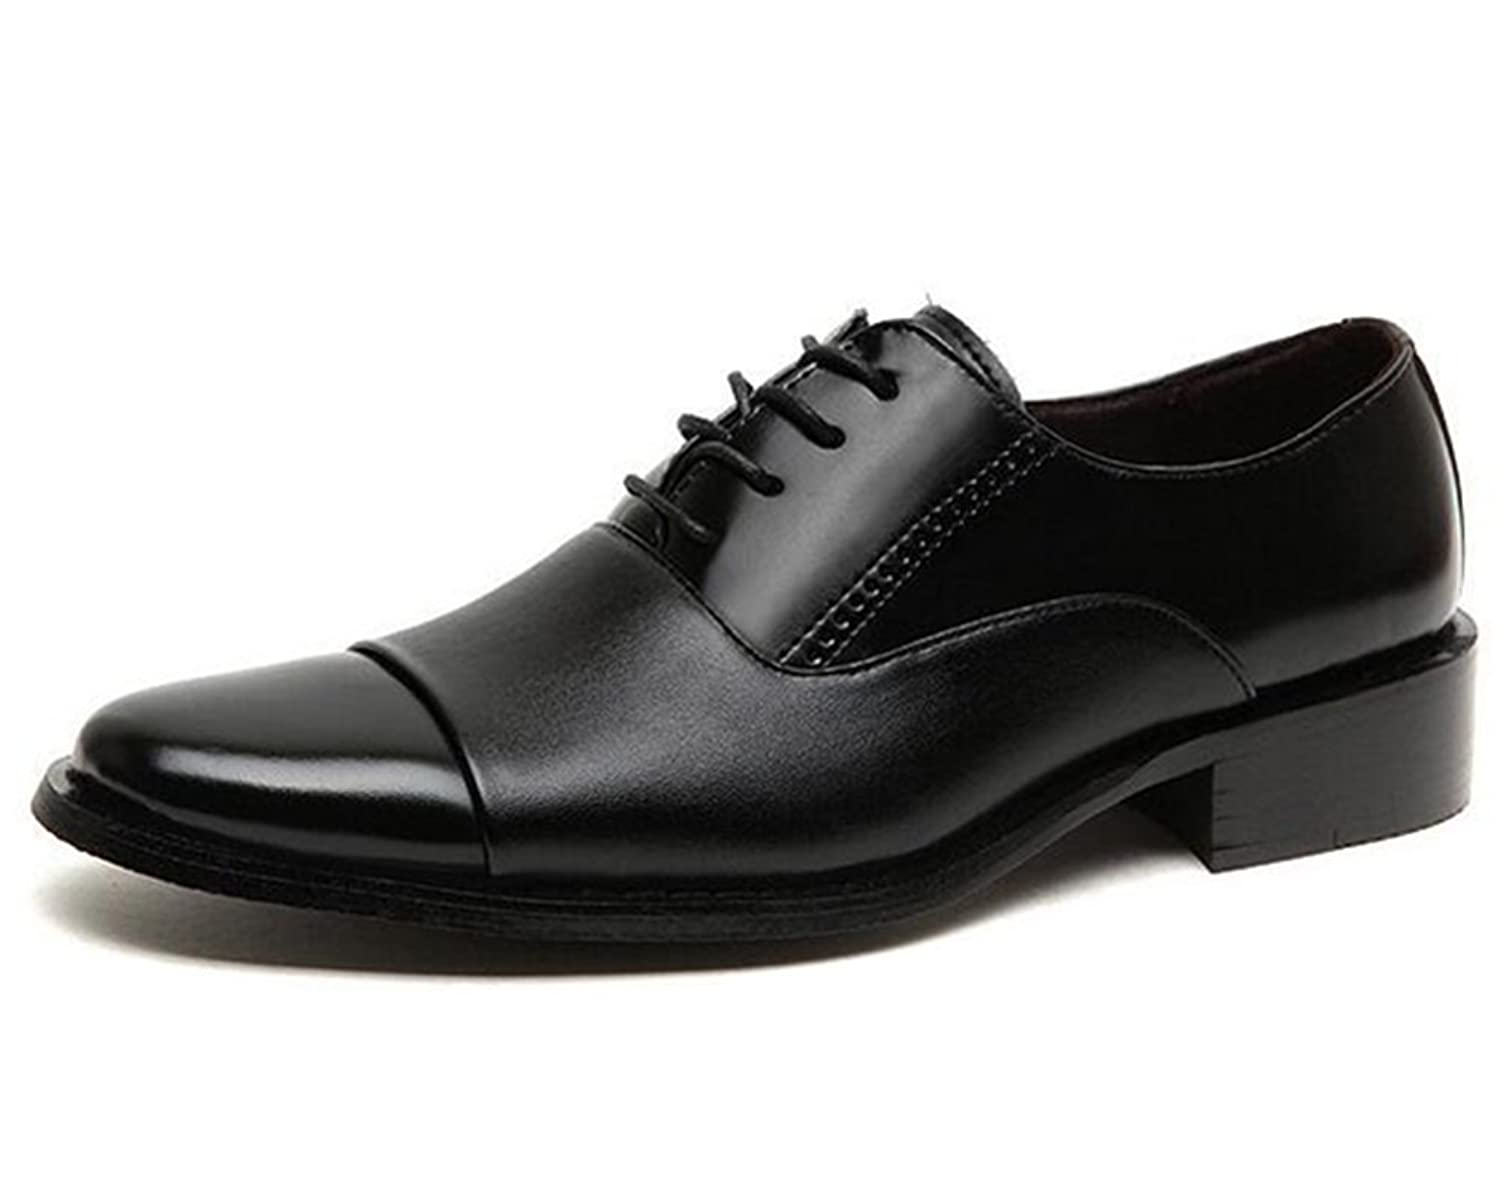 Nyngei Men's Casual Faux Leather Dress Outdoors Lace-up Wedding Oxford Shoes